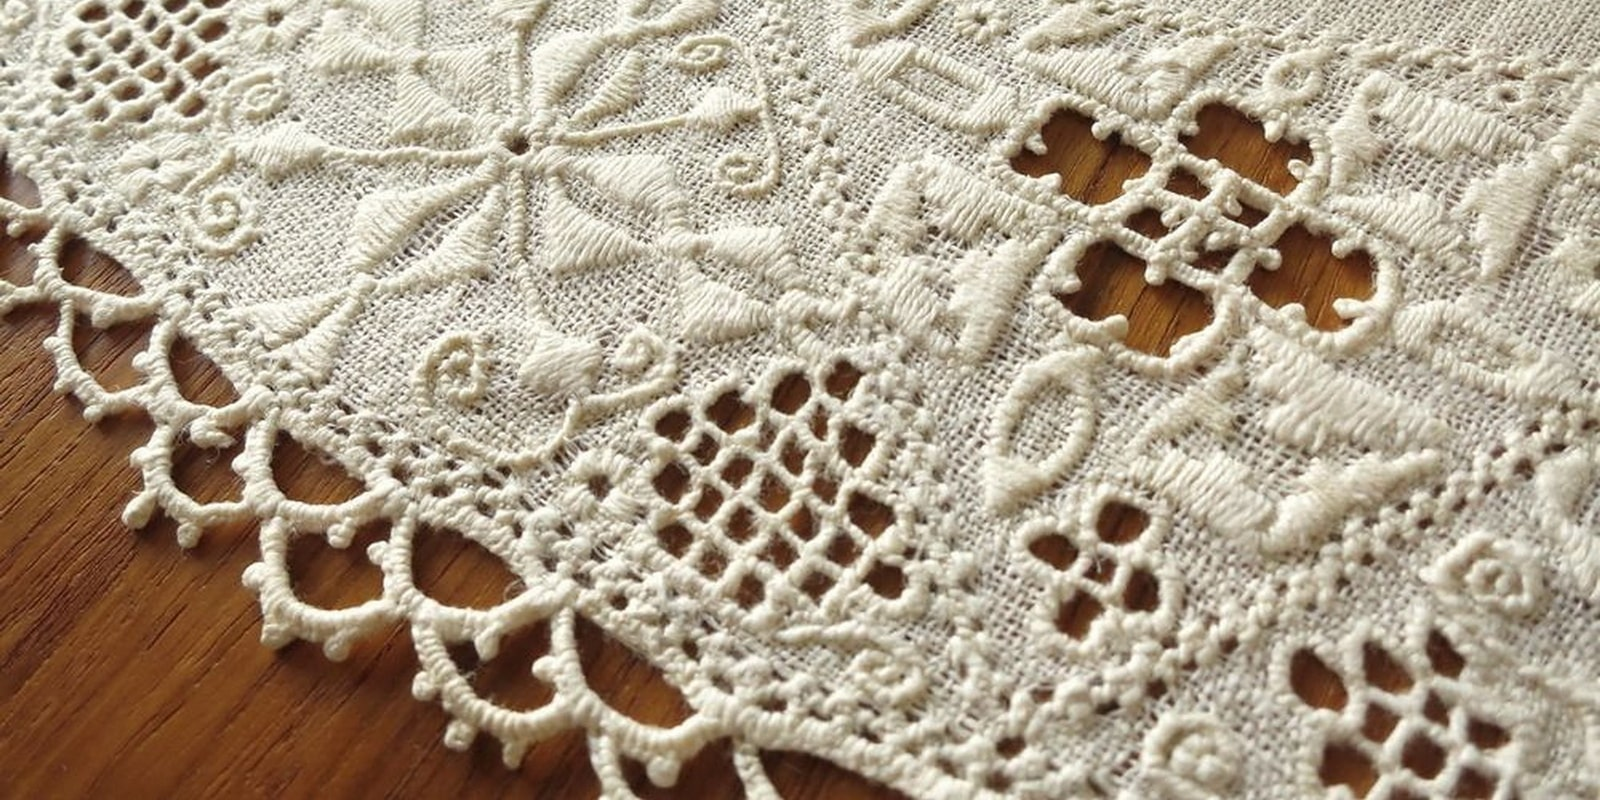 Handmade embroidery Lefkaritika in Cyprus